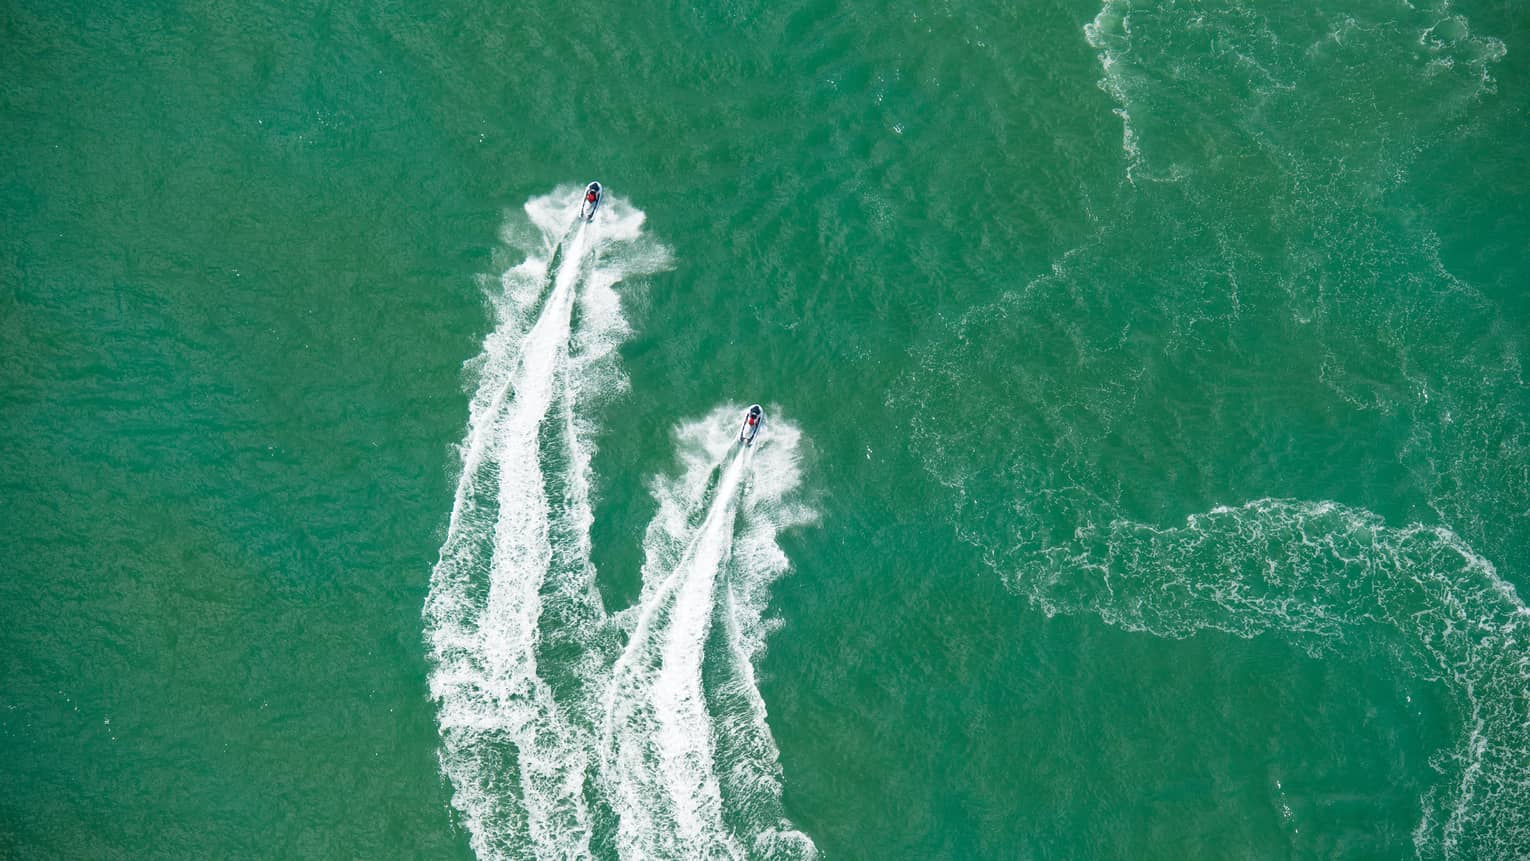 Aerial view of two jet skis, trails on water in ocean